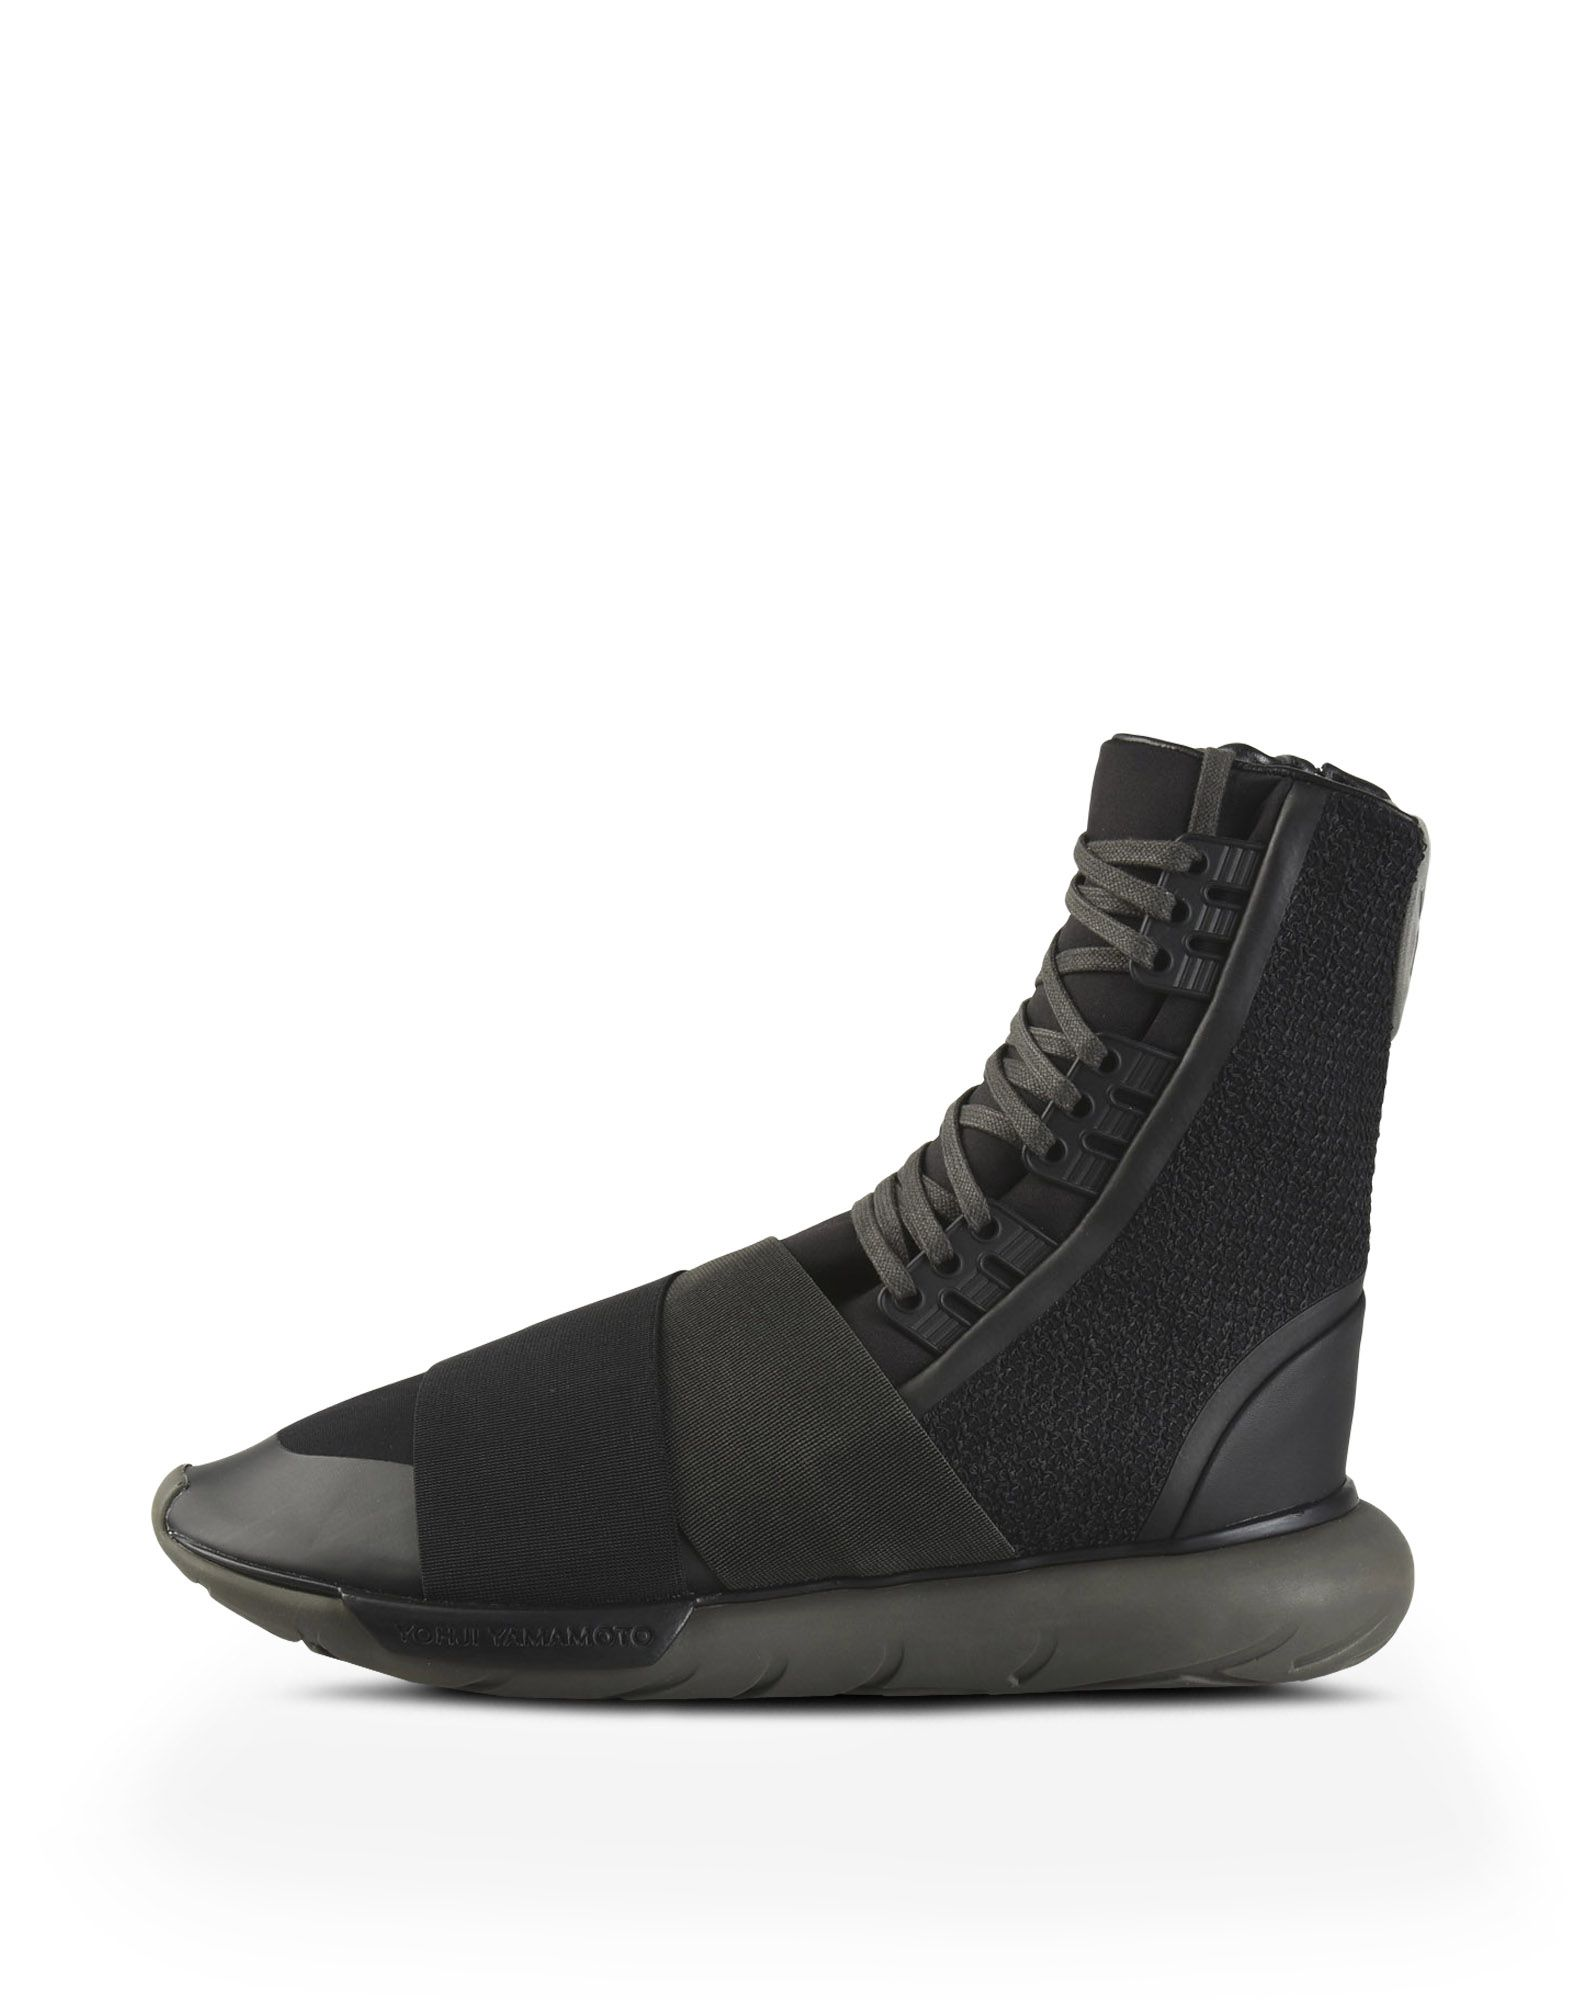 08a1d761882d1 ... Y-3 Y-3 QASA BOOT High-top sneakers Man f ...